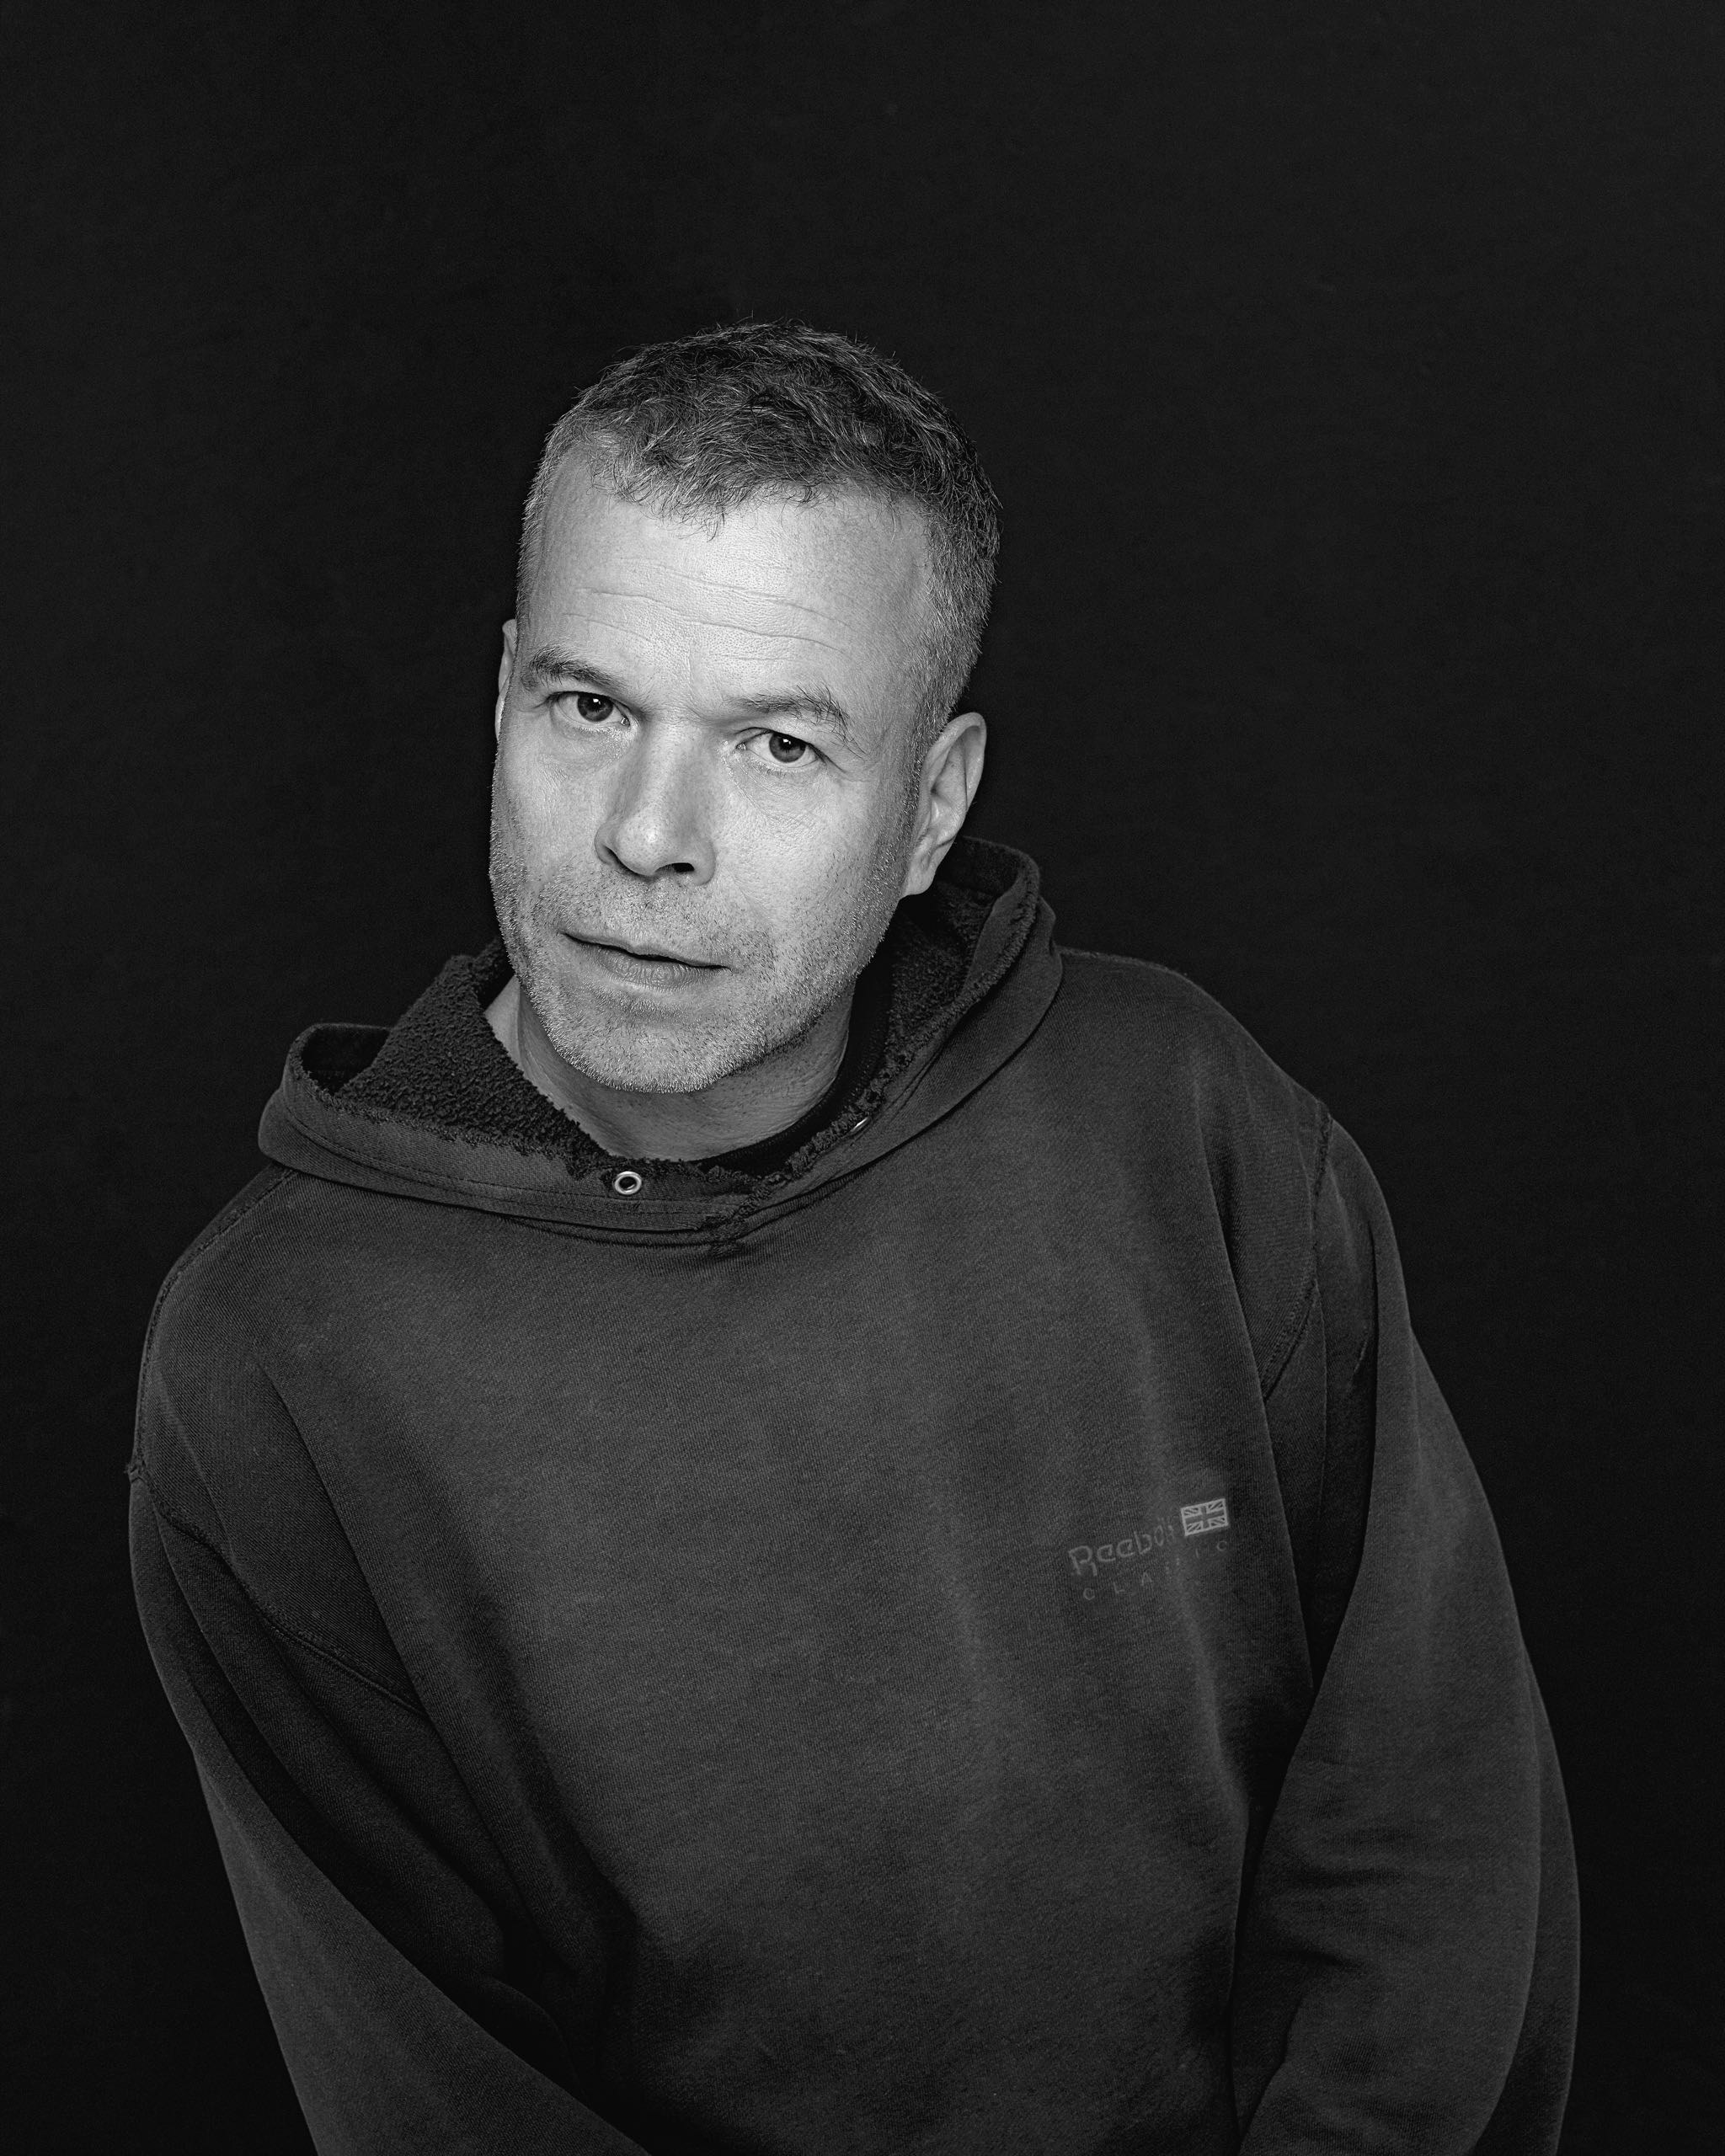 Wolfgang Tillmans photographed by Collier Schorr for The New Yorker.